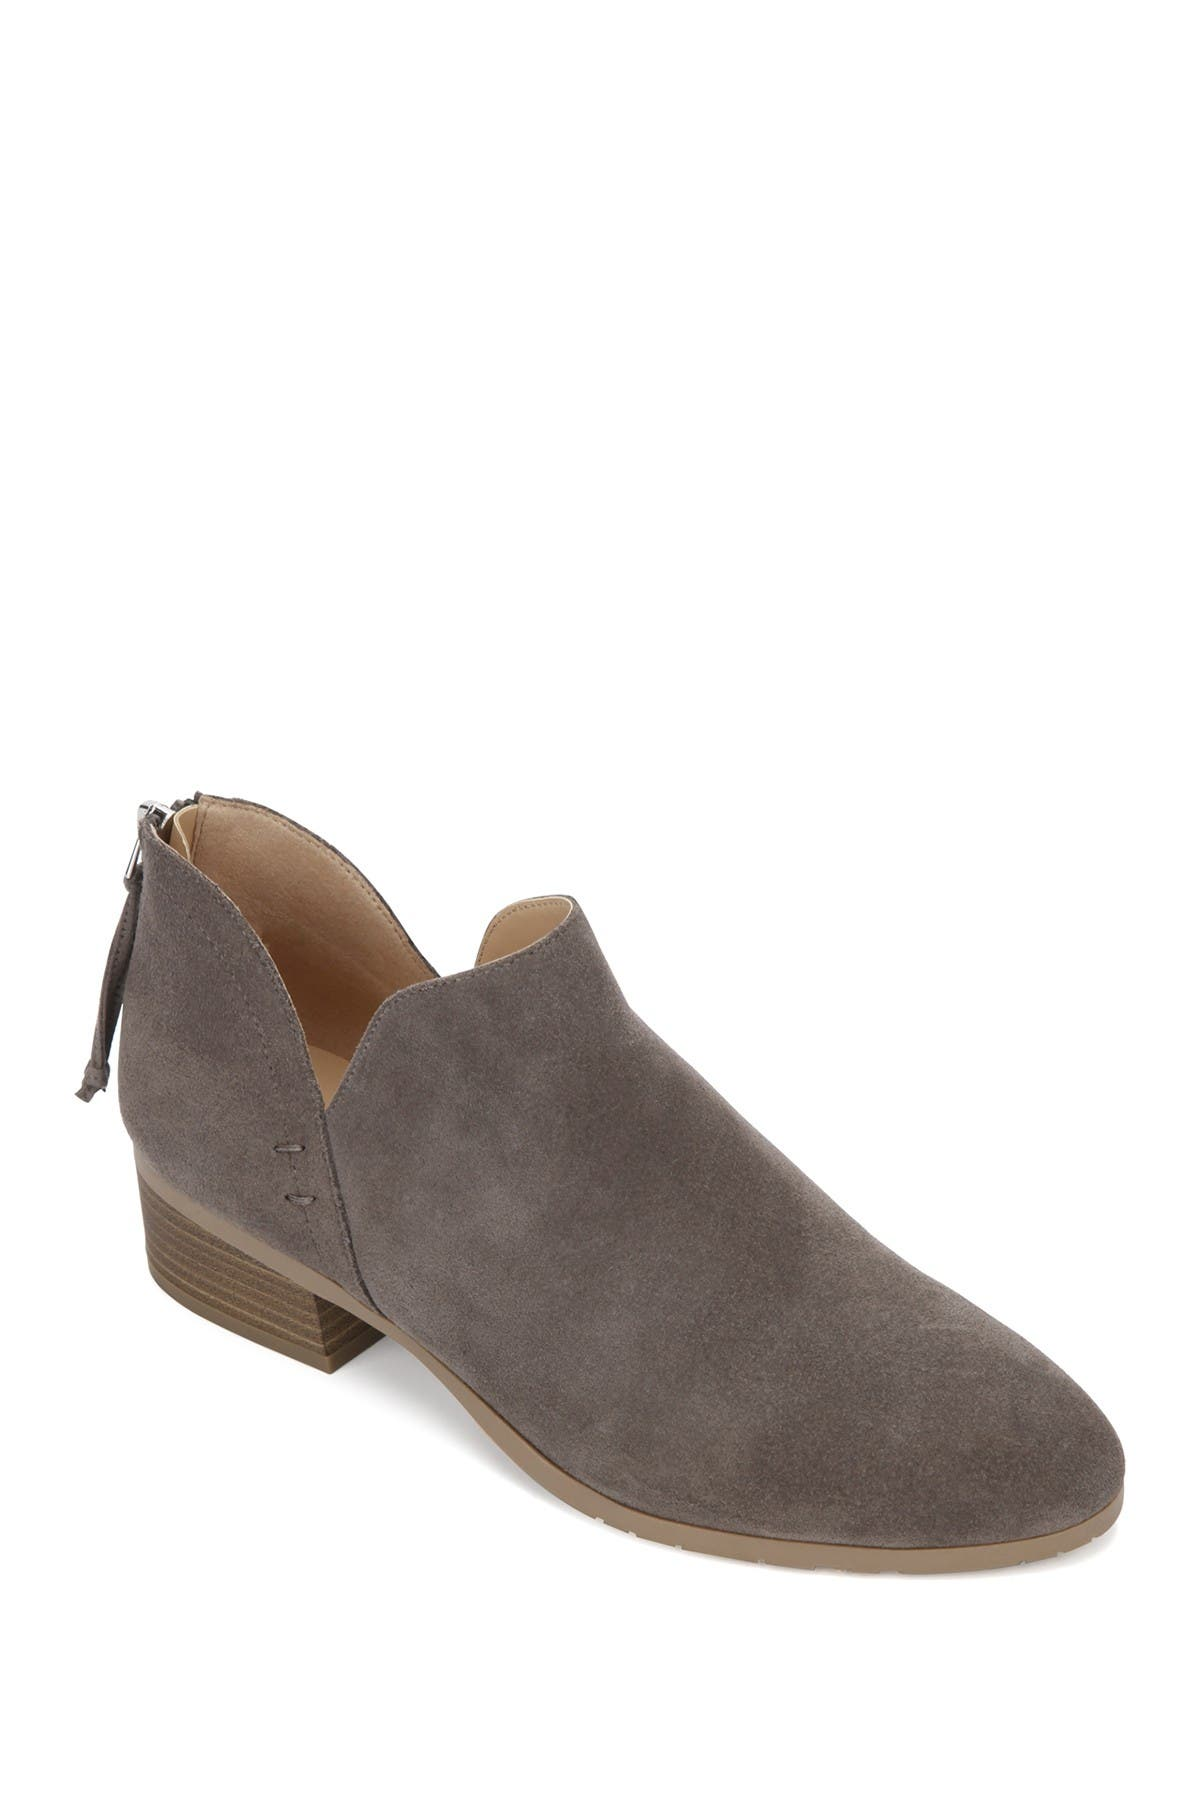 Image of Kenneth Cole Reaction Side Skip Suede Ankle Boot